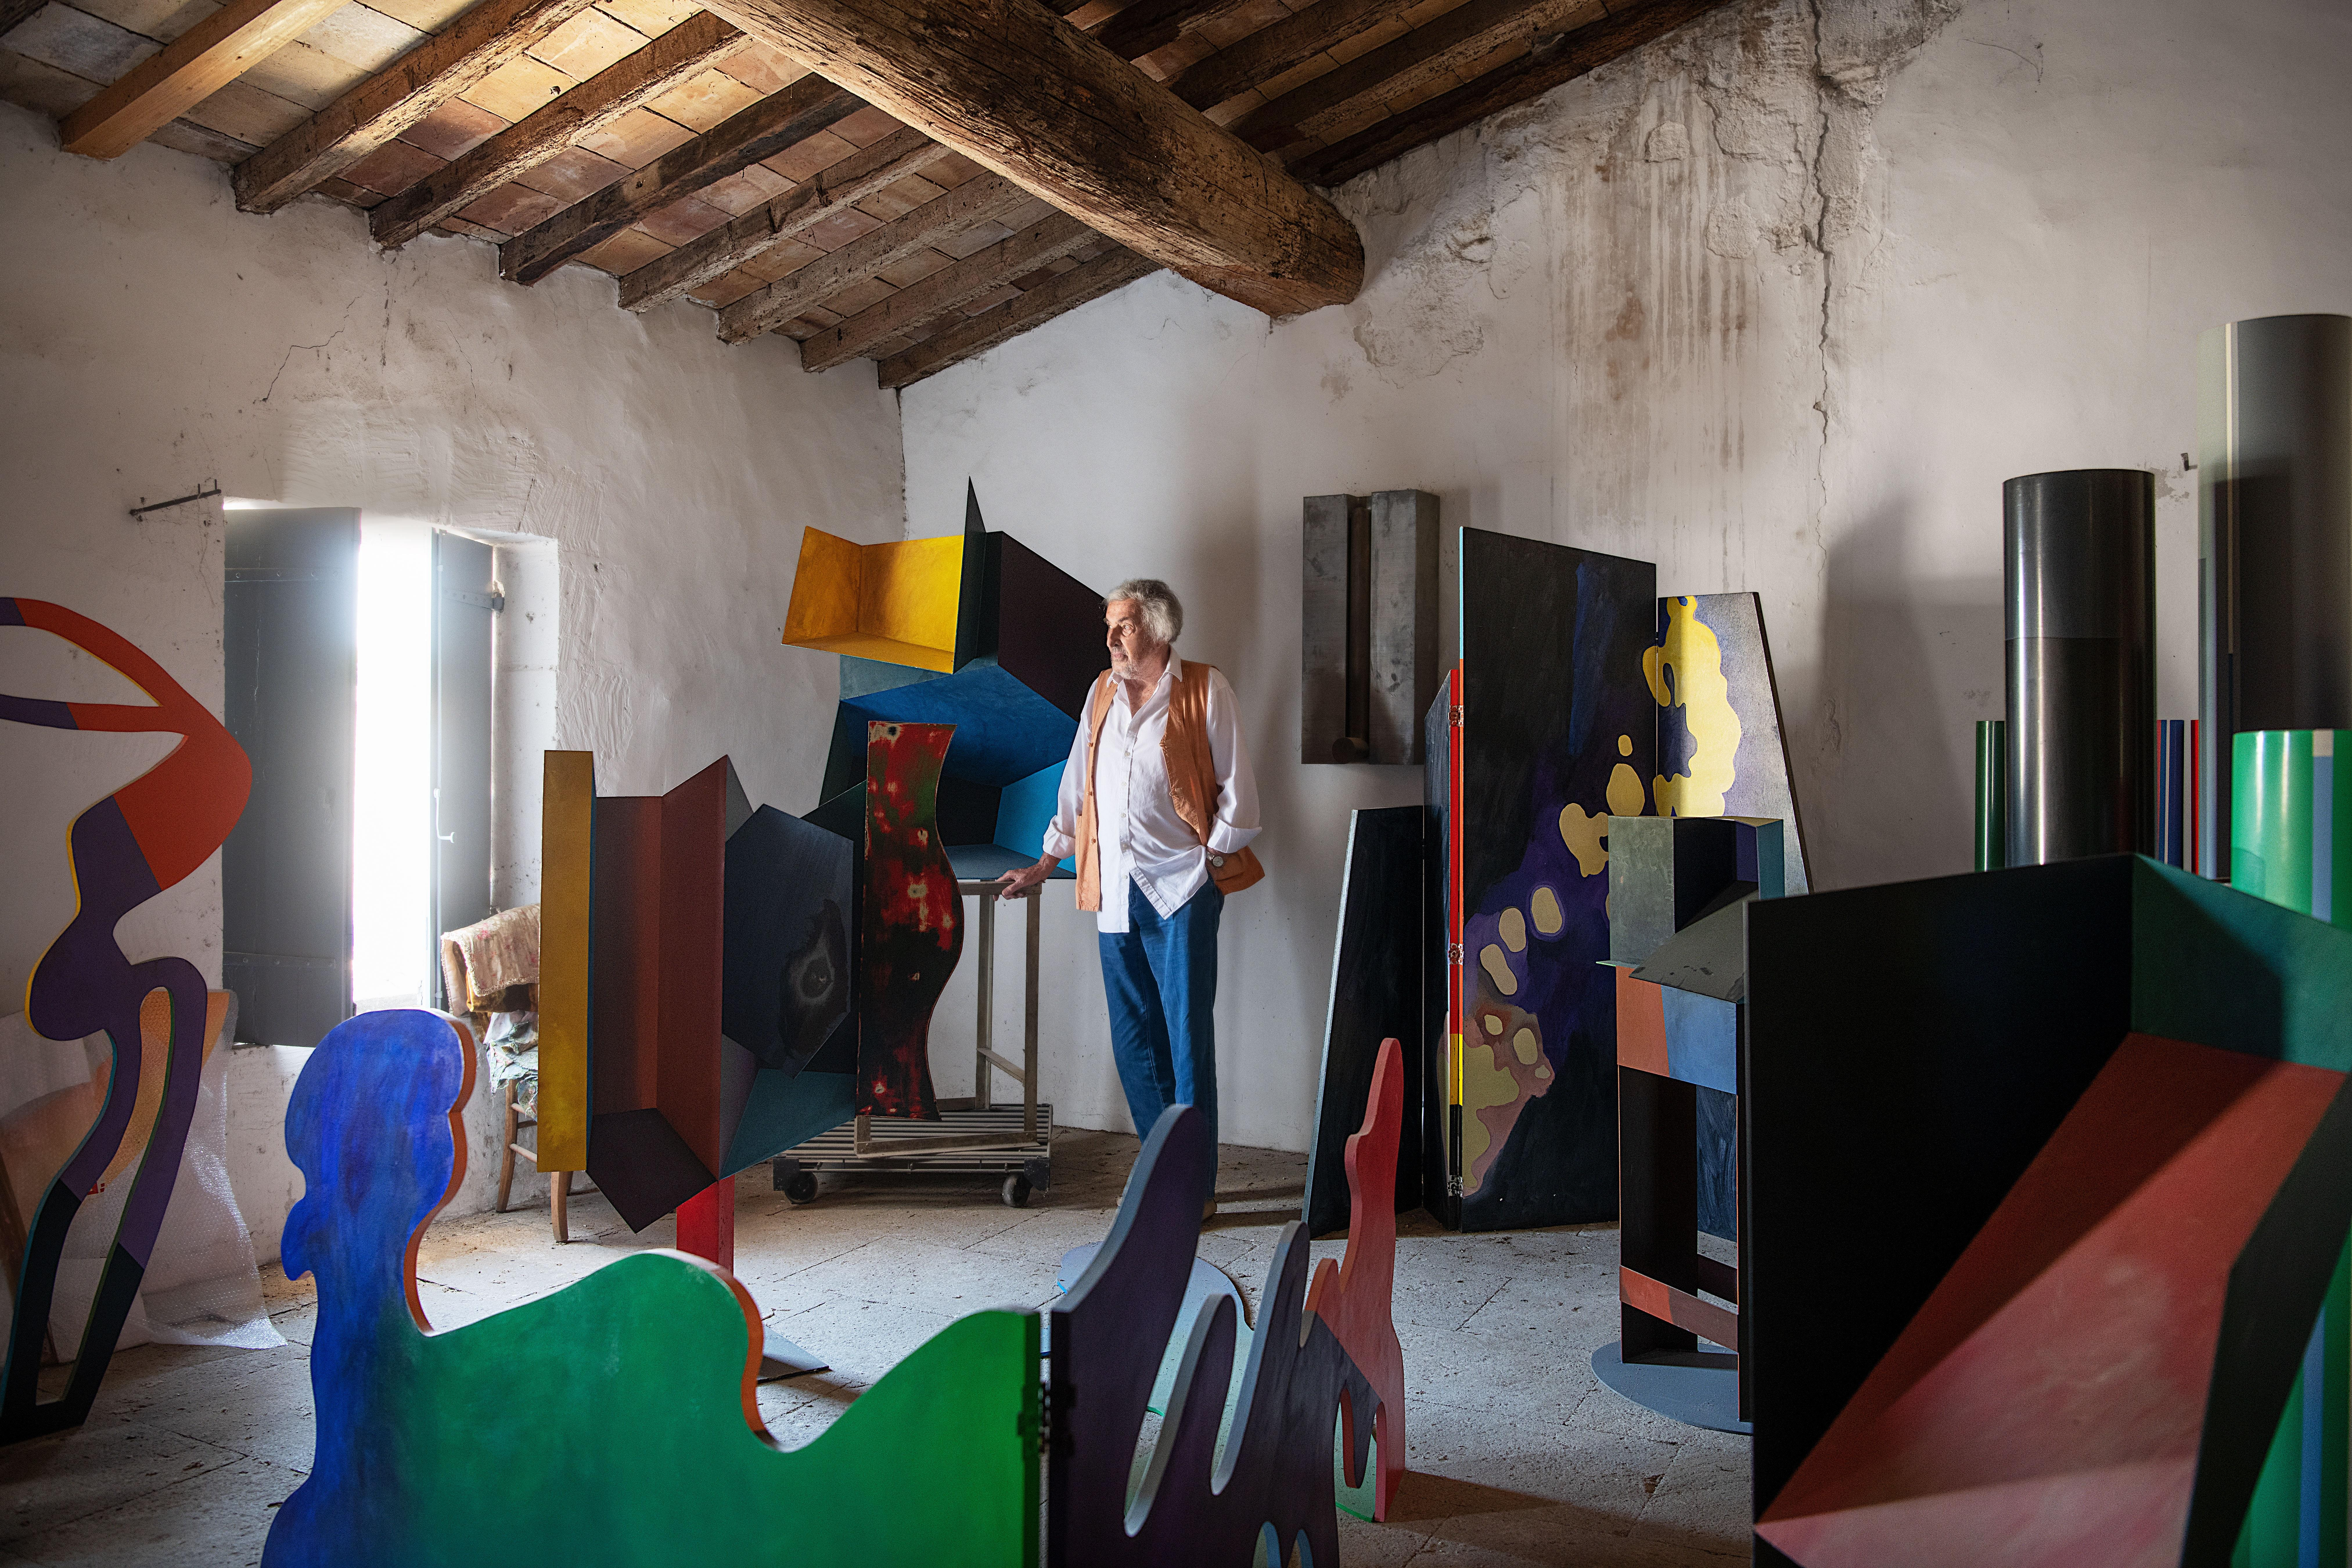 In his attic, Guy de Rougemont is surrounded by his polychrome sculptures.